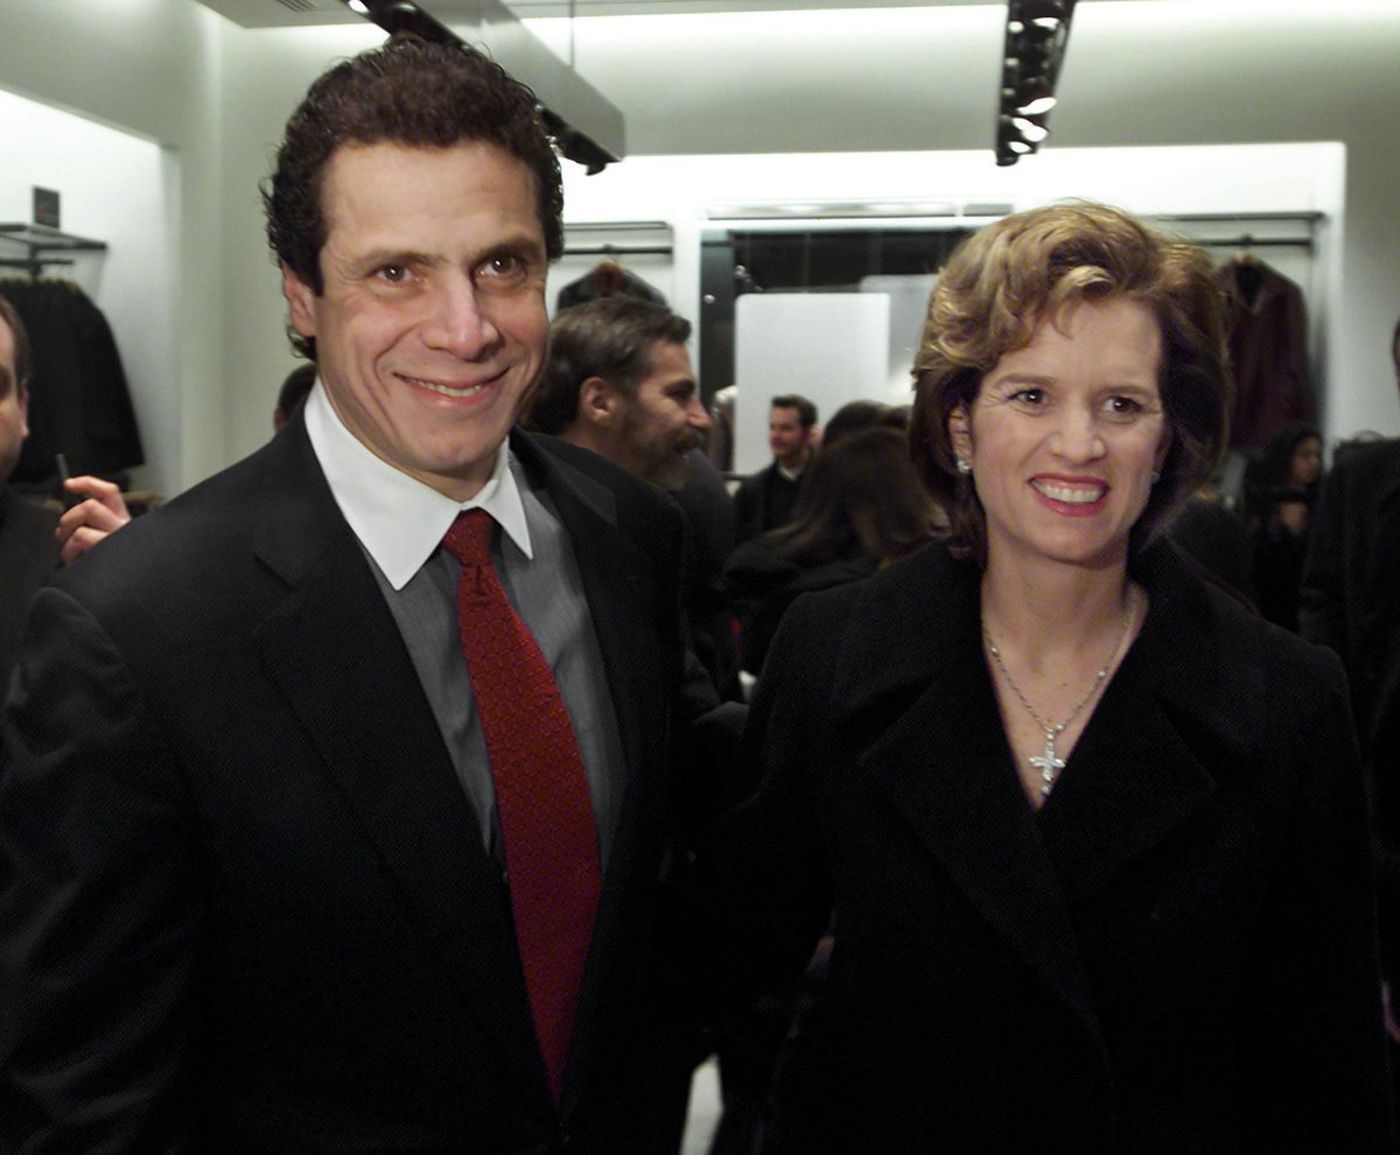 Andrew Cuomo S Marriage To Kerry Kennedy Was Doomed Earlier Than Known Reveals Book With Images Kennedy Andrew Cuomo Marriage